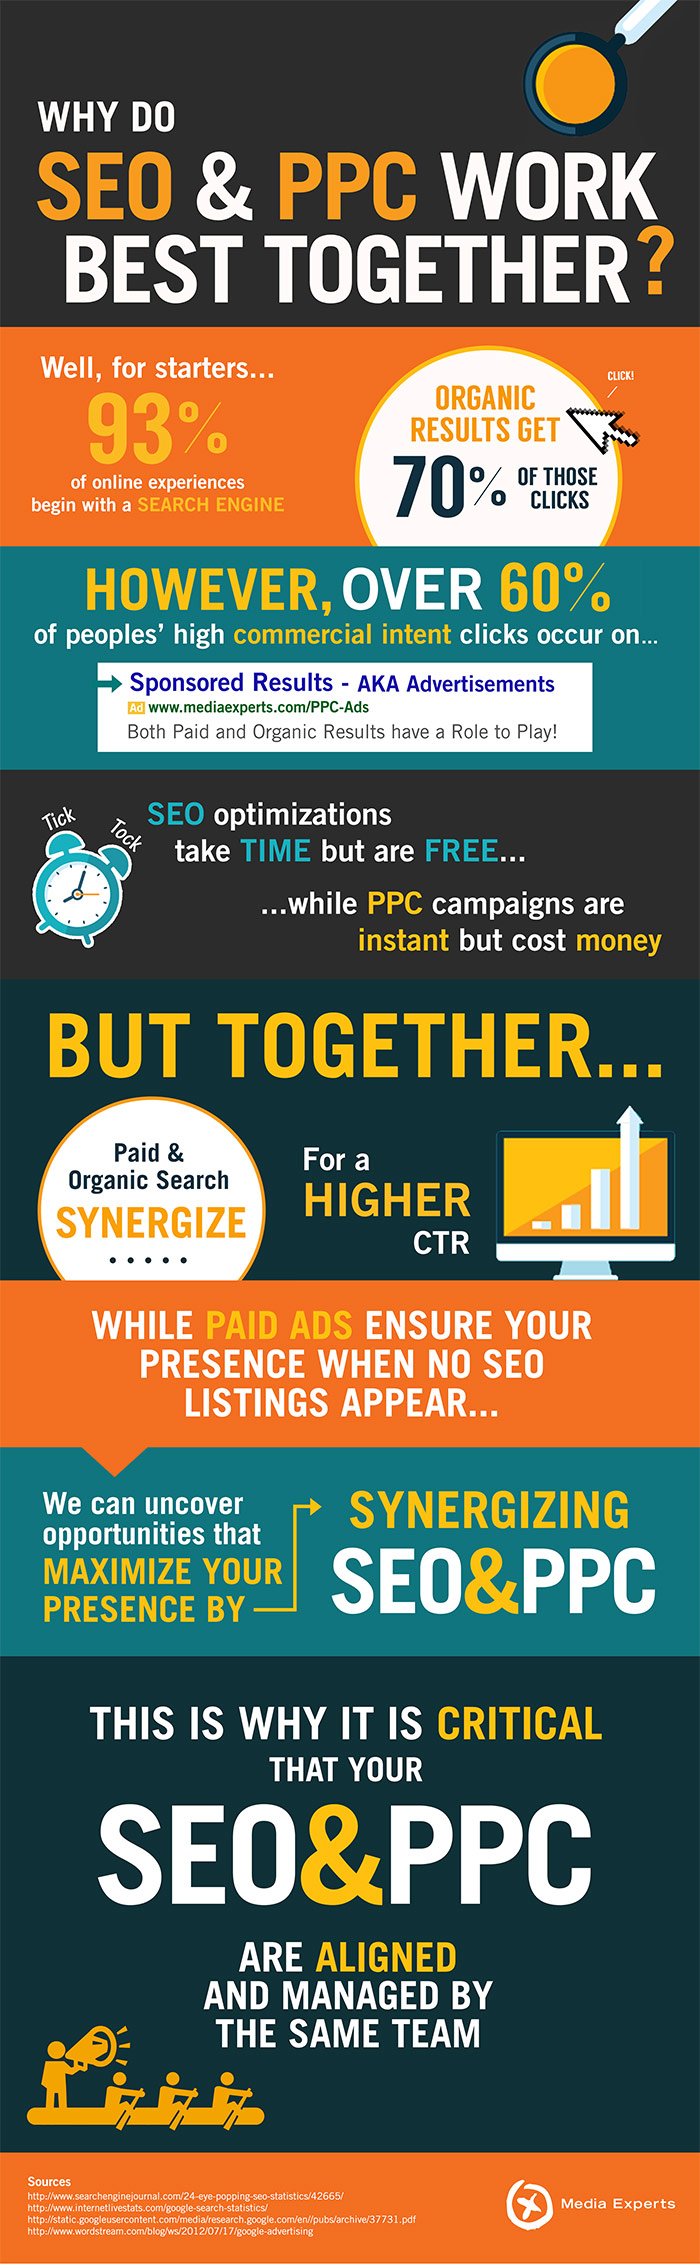 Why Do SEO & PPC Work Together The Best?